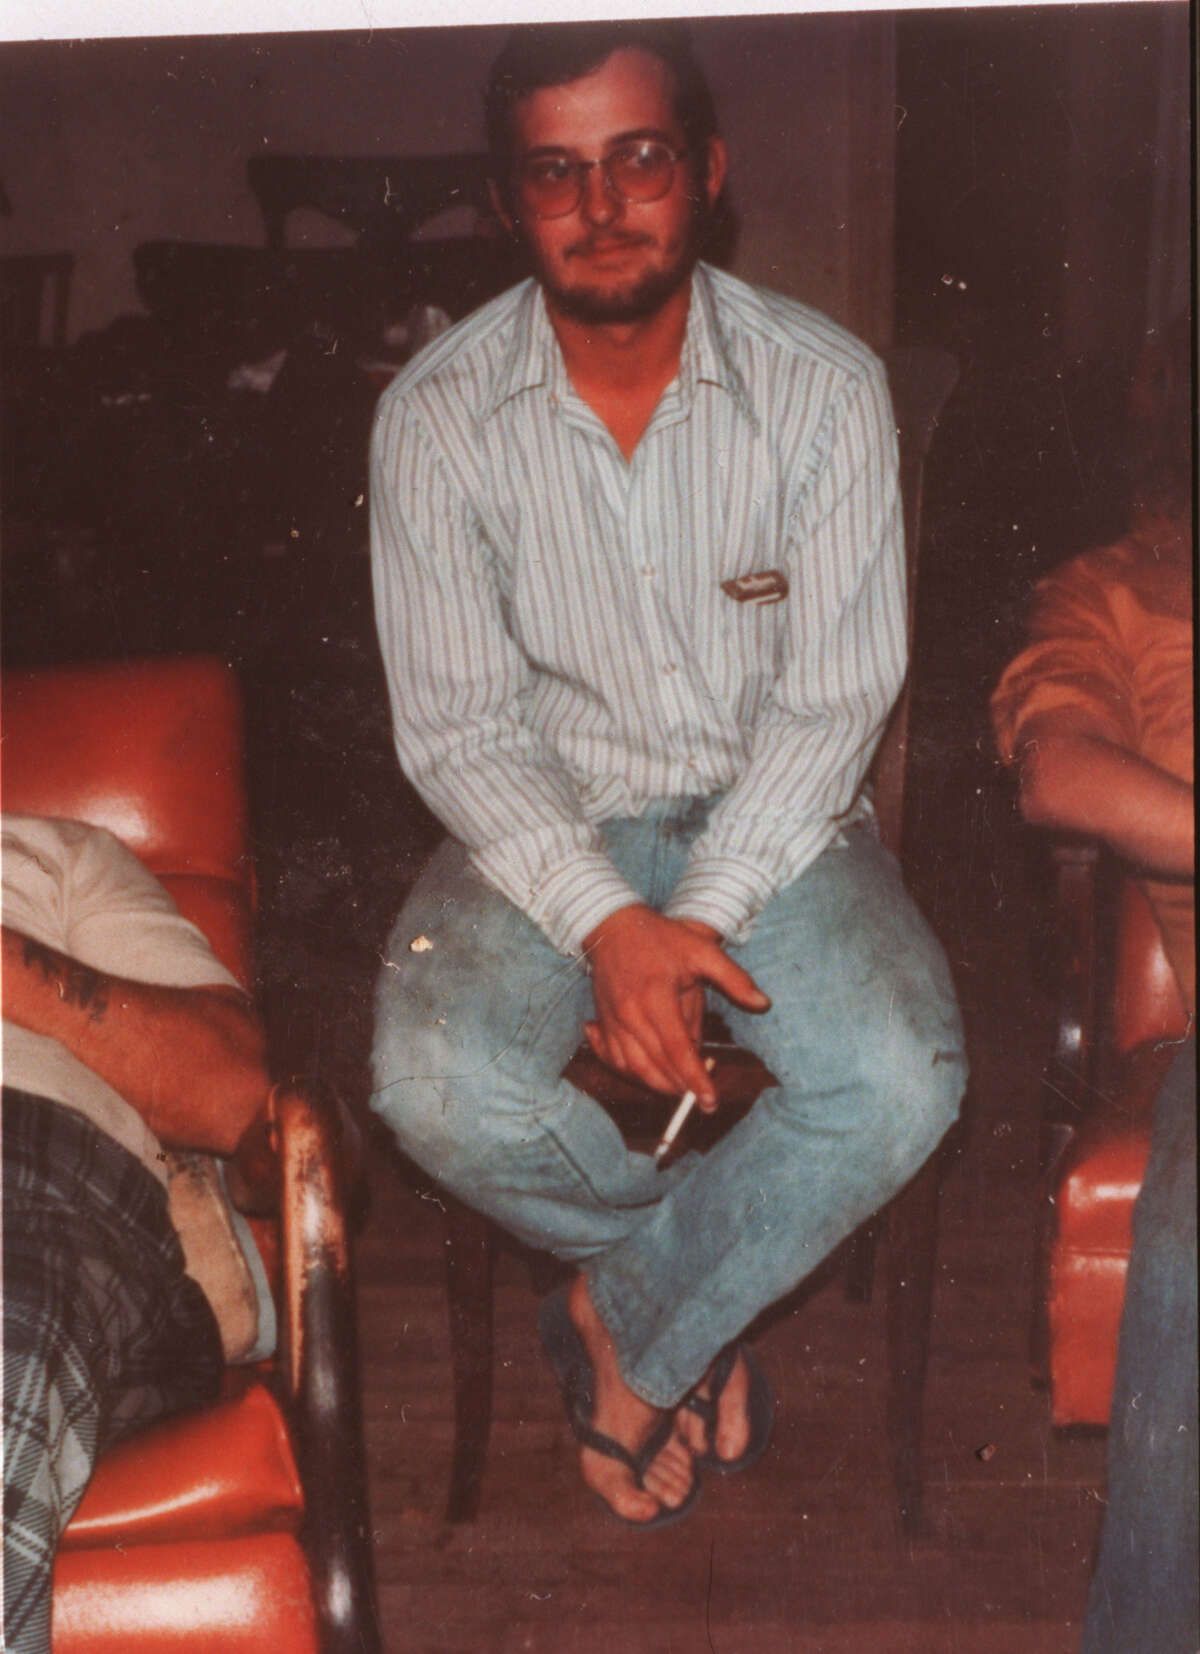 Copy of an undated photo of Danny Paul Bible, self-confessed murderer of 20-year-old Inez Deaton, whose body was found along Greens Bayou in1979.